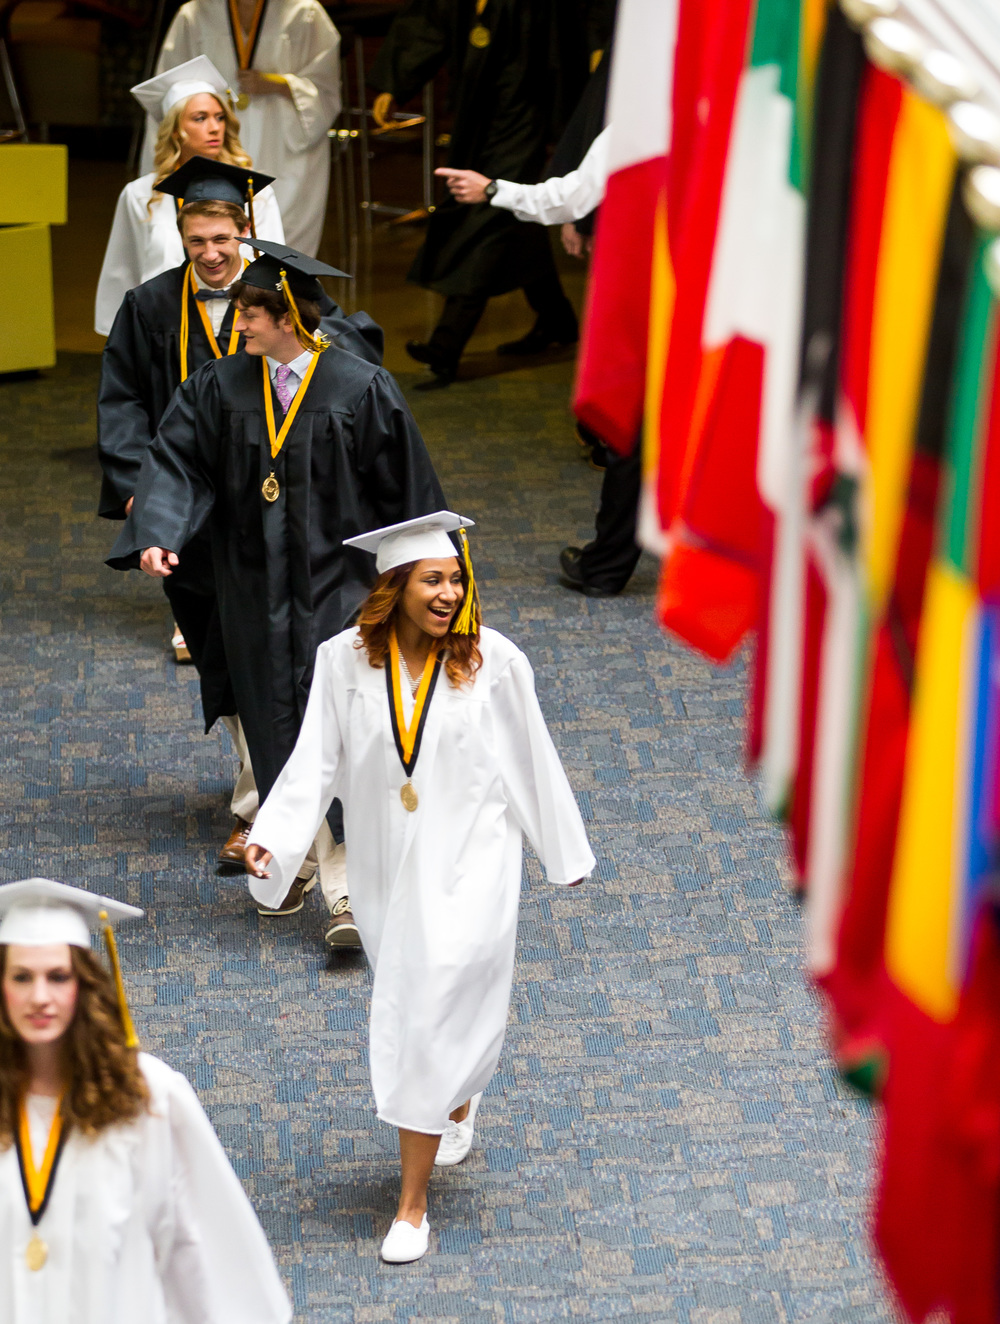 Sacred Heart-Griffin graduates make their way inside for the processional during the graduation ceremony for Sacred Heart-Griffin at Sangamon Auditorium , Sunday, May 24, 2015, in Springfield, Ill. Justin L. Fowler/The State Journal-Register